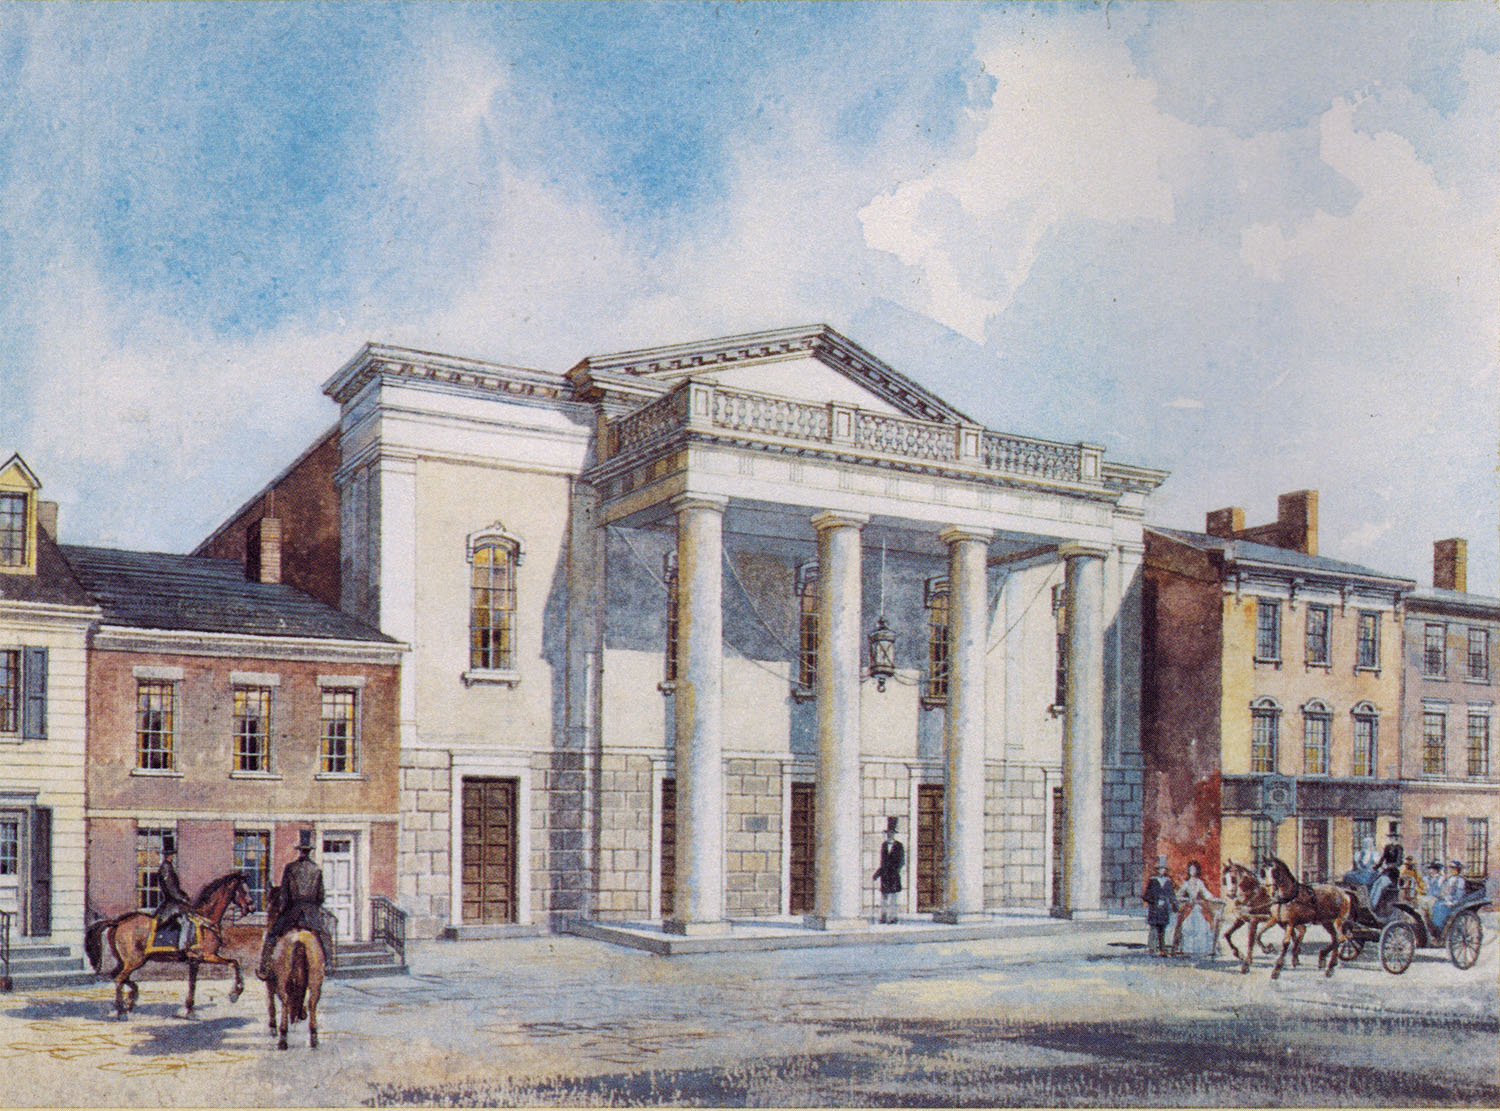 Painting of the National Theatre, 1835.